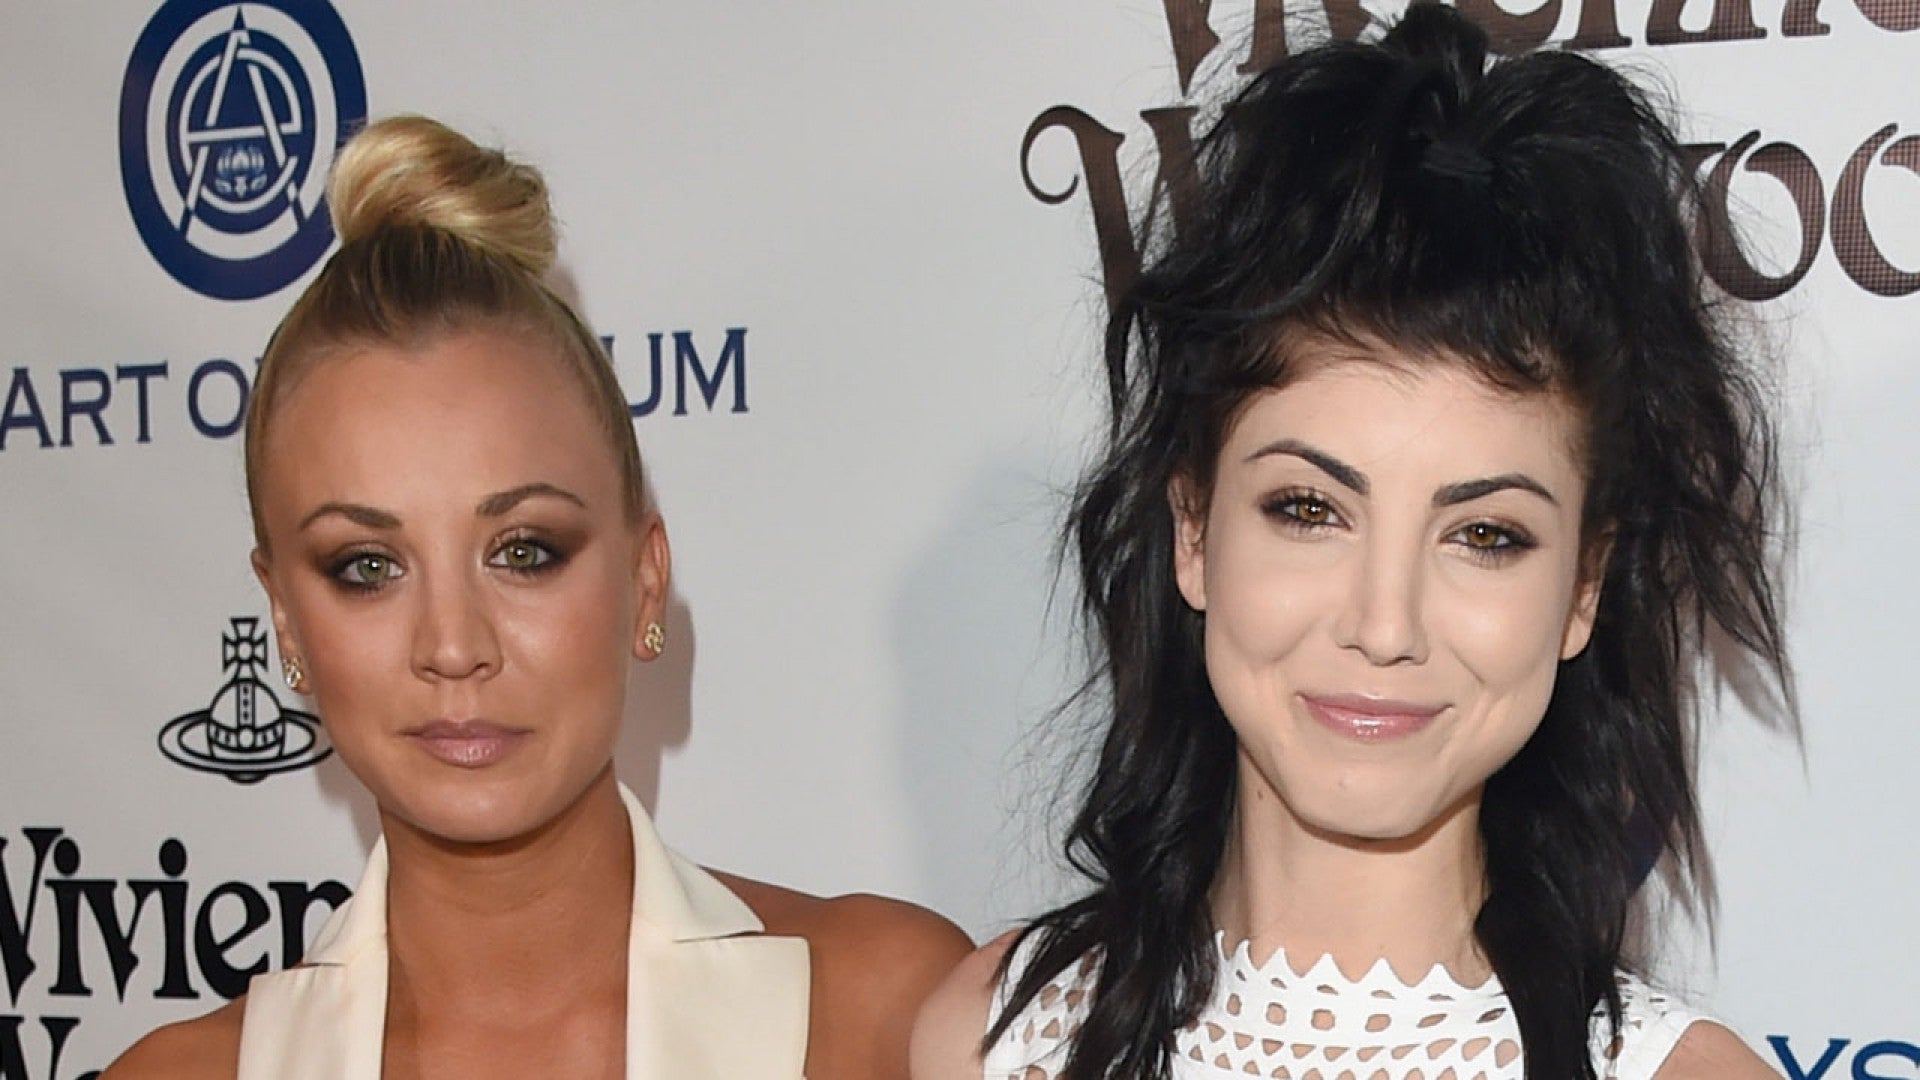 EXCLUSIVE: Briana Cuoco Receives Best Advice From Sister Kaley: Don't Be a  Jerk, Work Hard